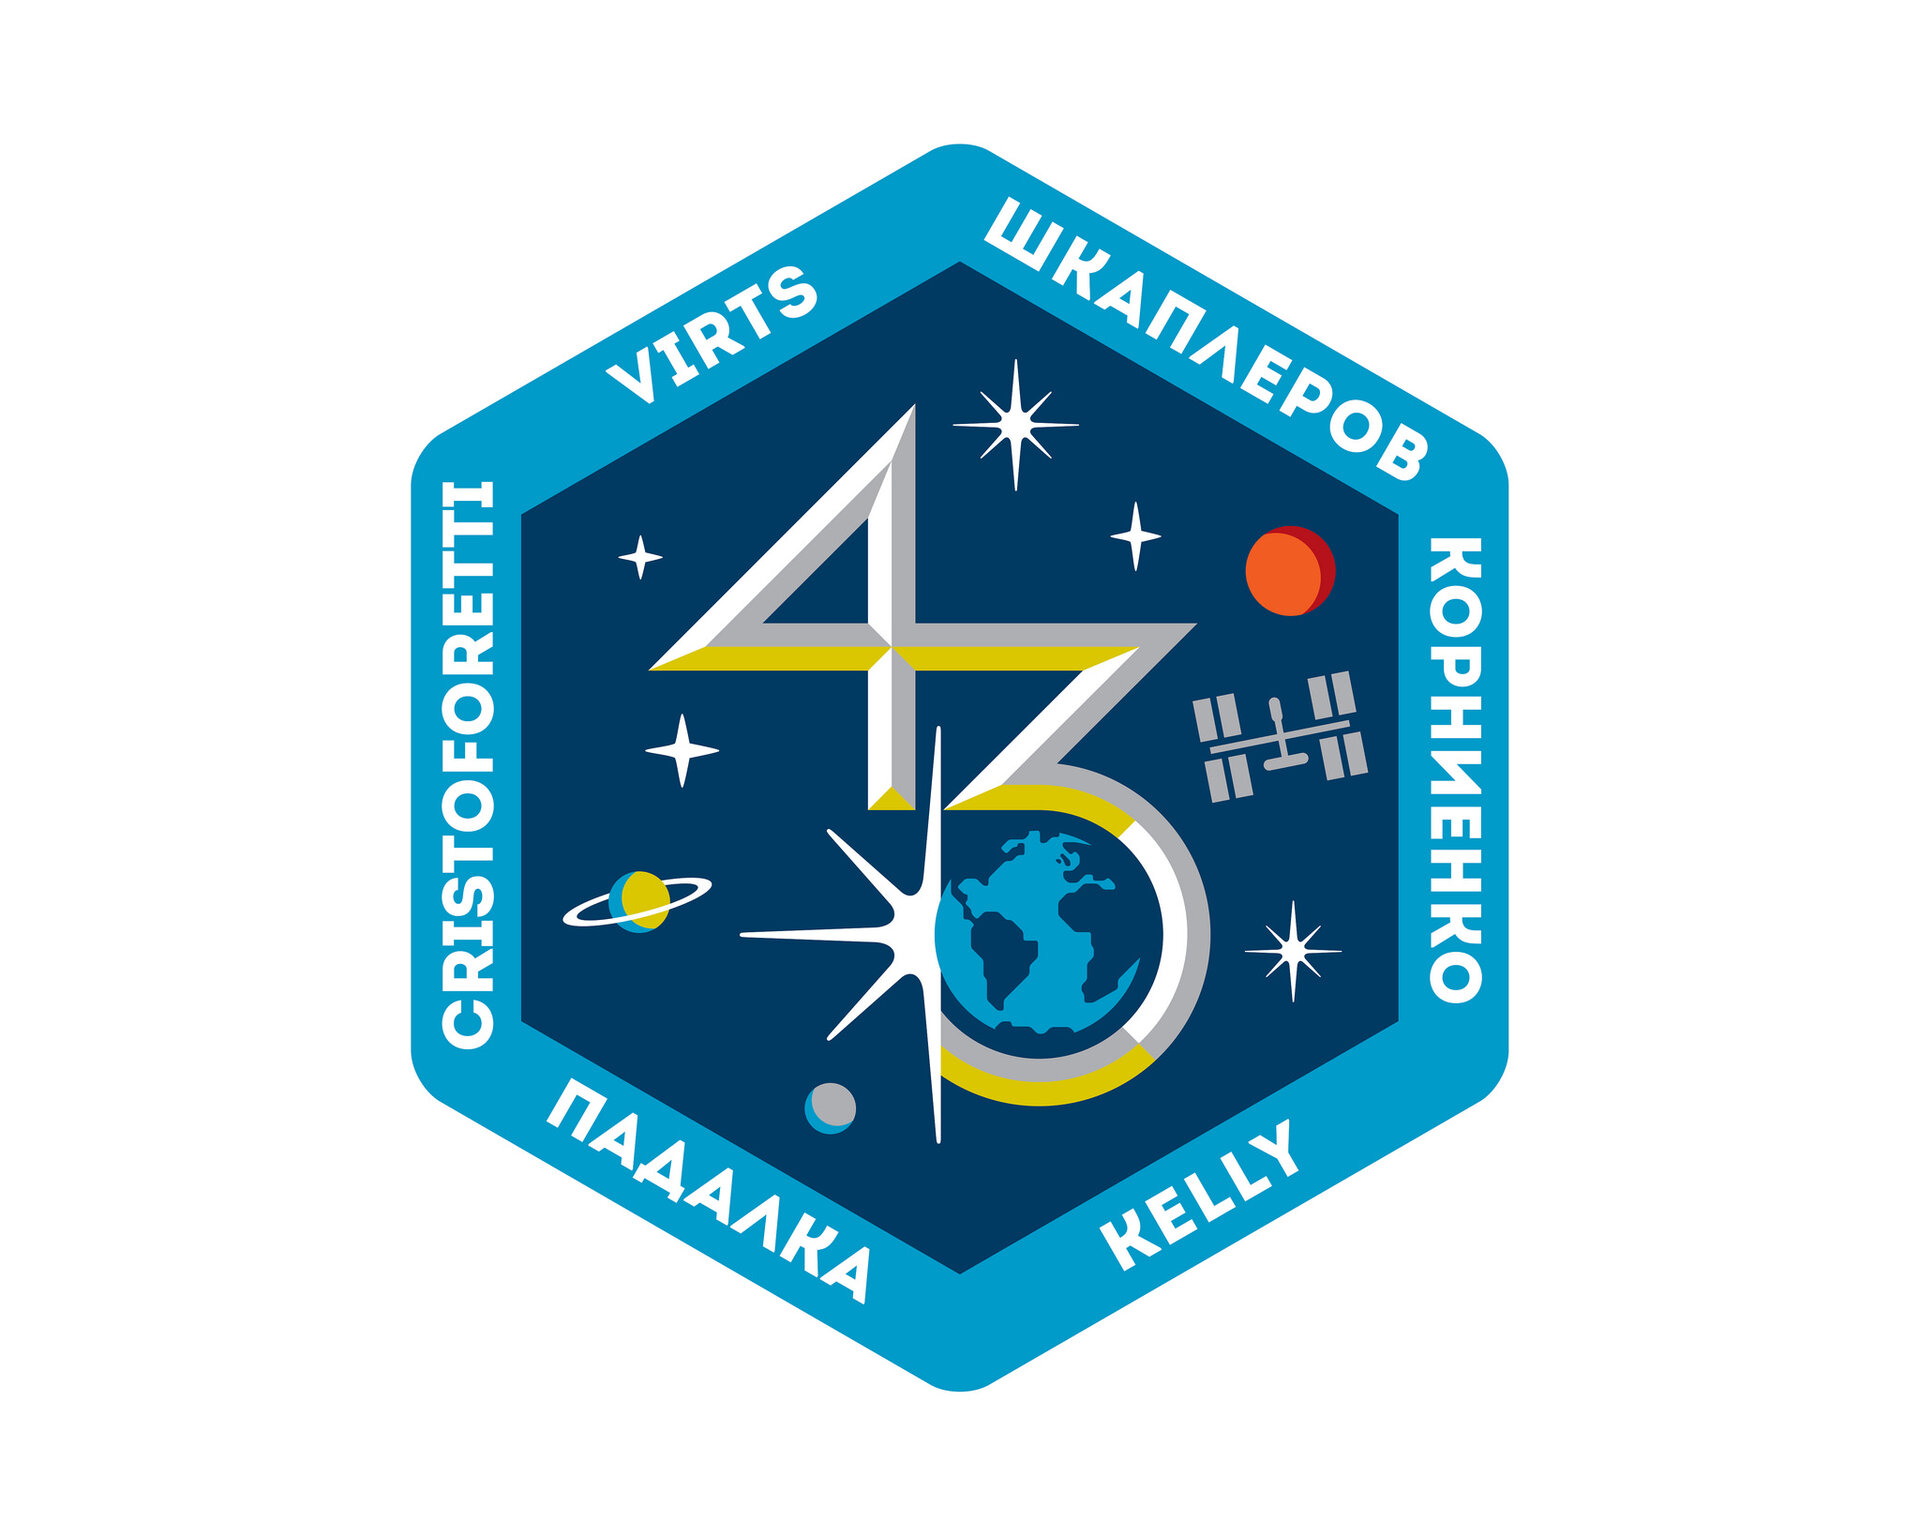 ISS Expedition 43 patch, 2015